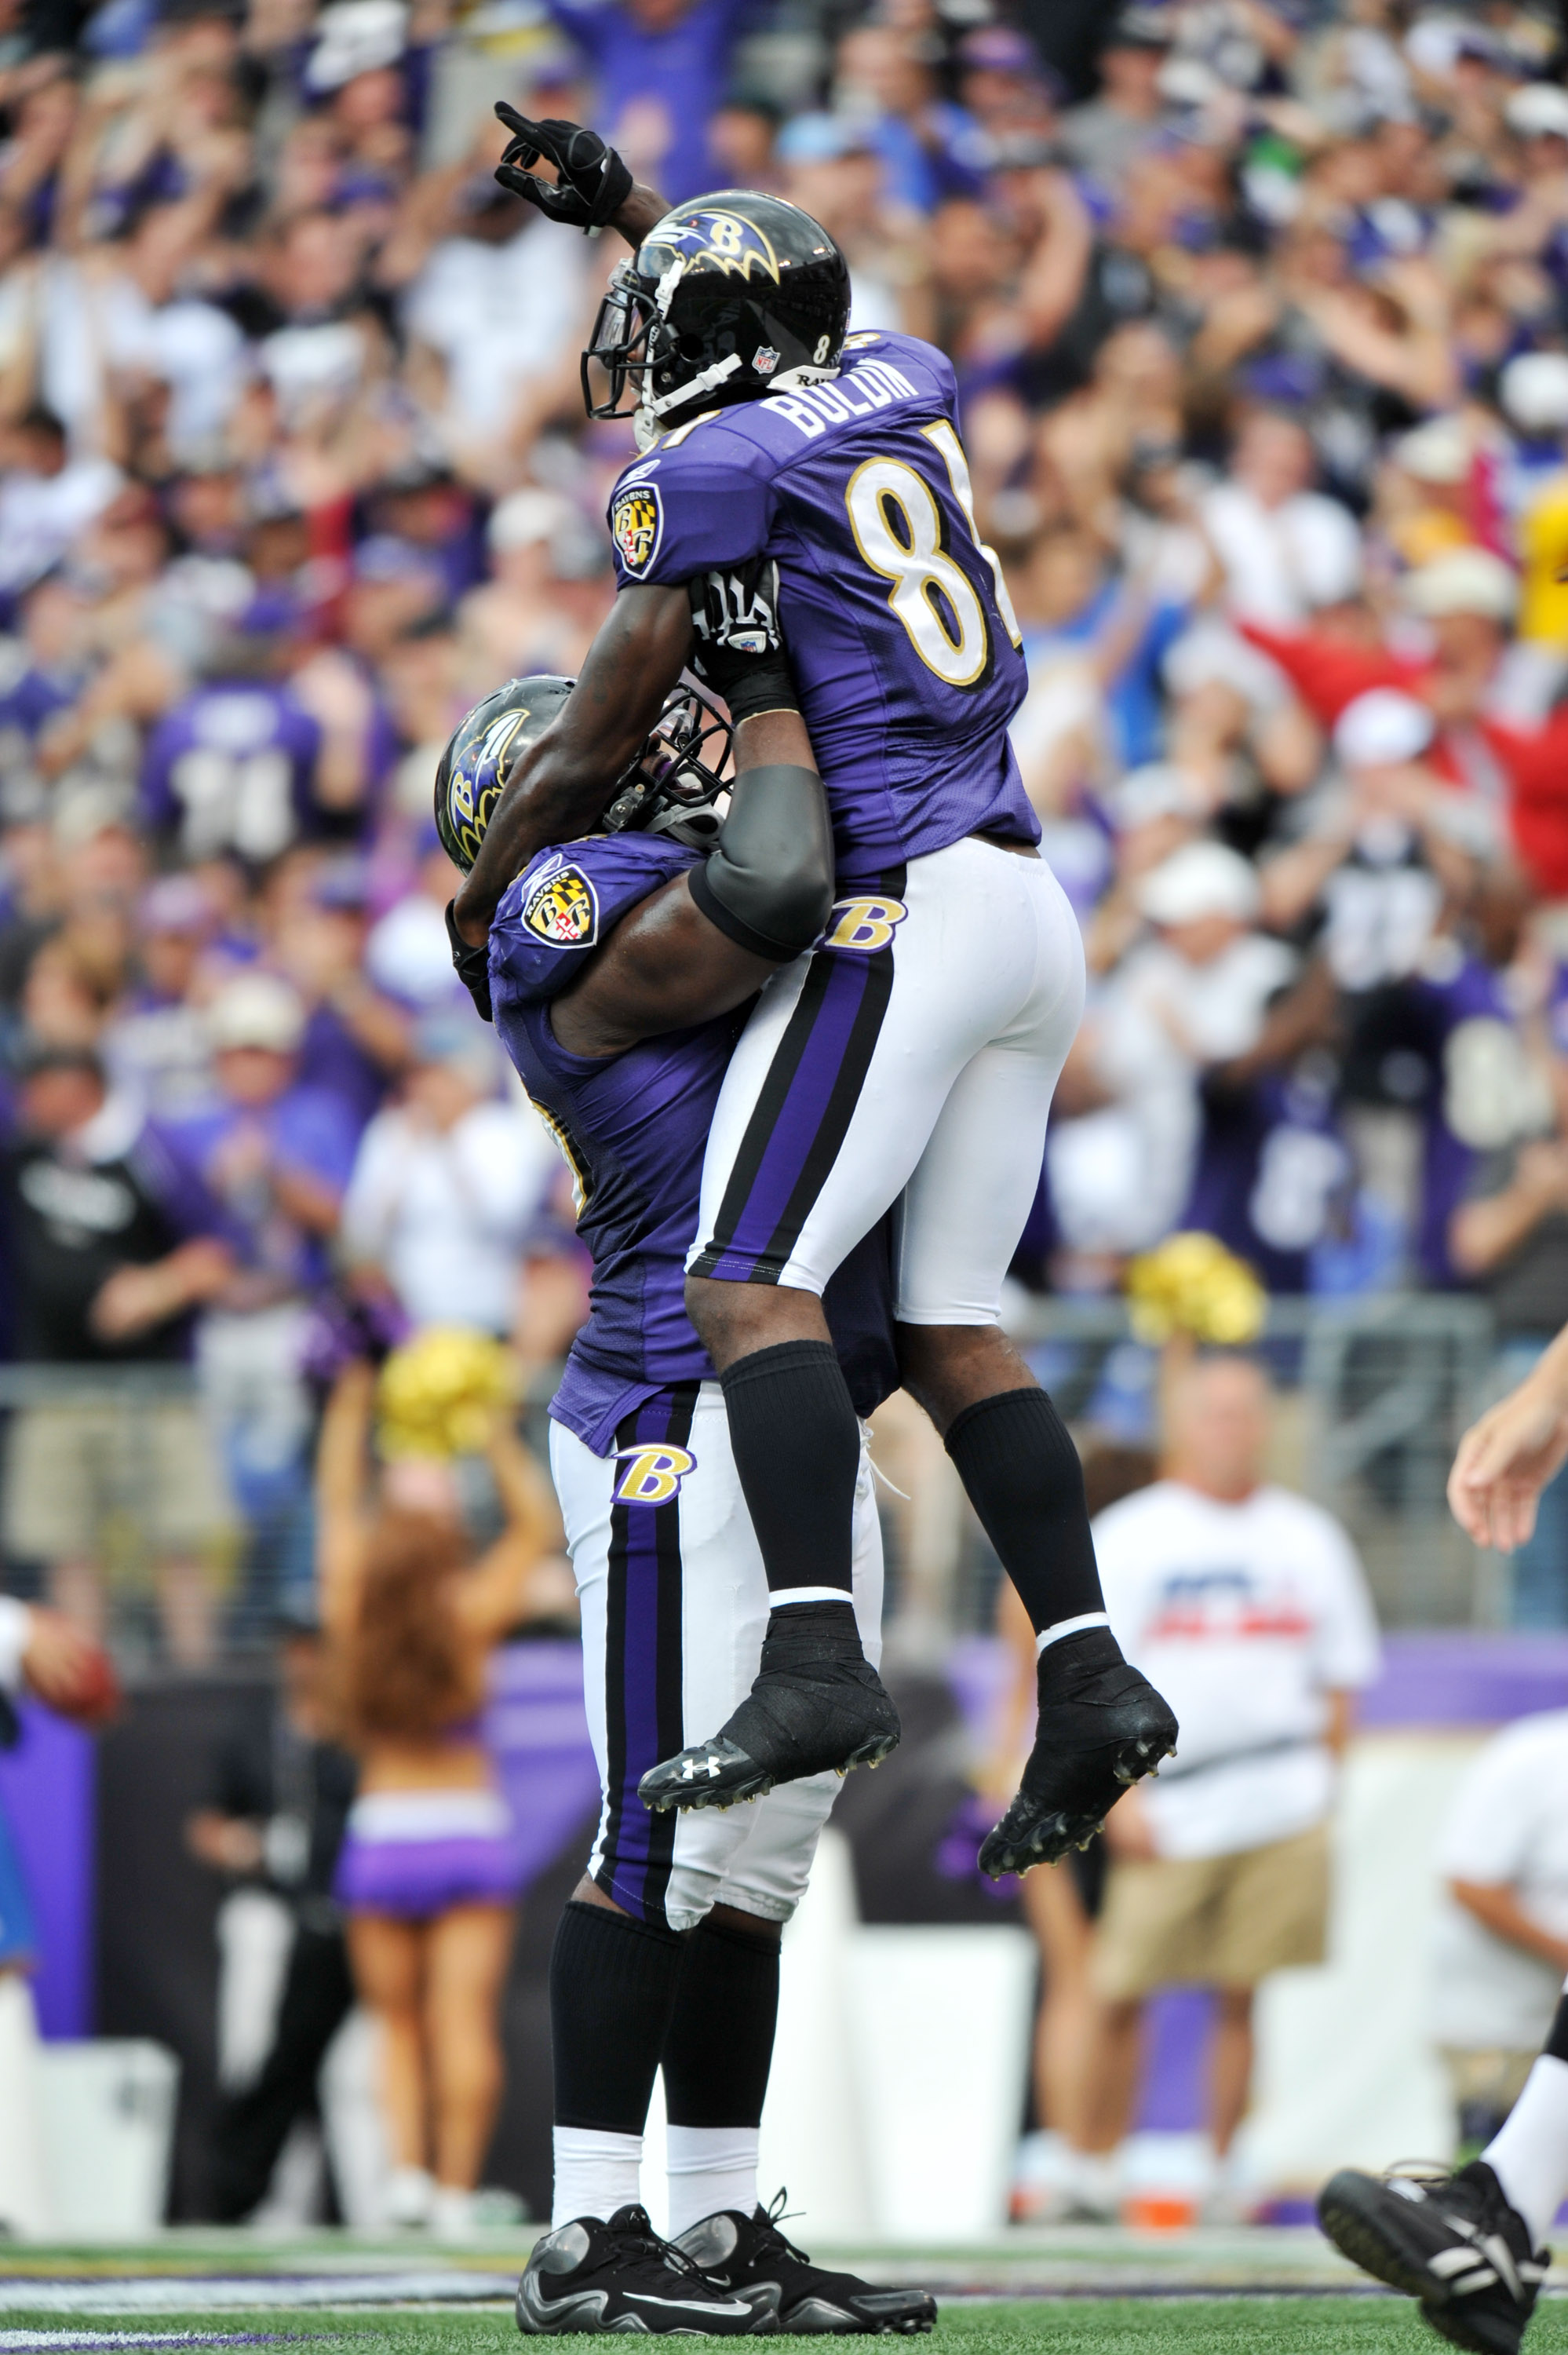 BALTIMORE - SEPTEMBER 26:  Anquan Boldin #81 of the Baltimore Ravens celebrates one of his three touchdowns against the Cleveland Browns  at M&T Bank Stadium on September 26, 2010 in Baltimore, Maryland. The Ravens defeated the Browns 24-17. (Photo by Lar